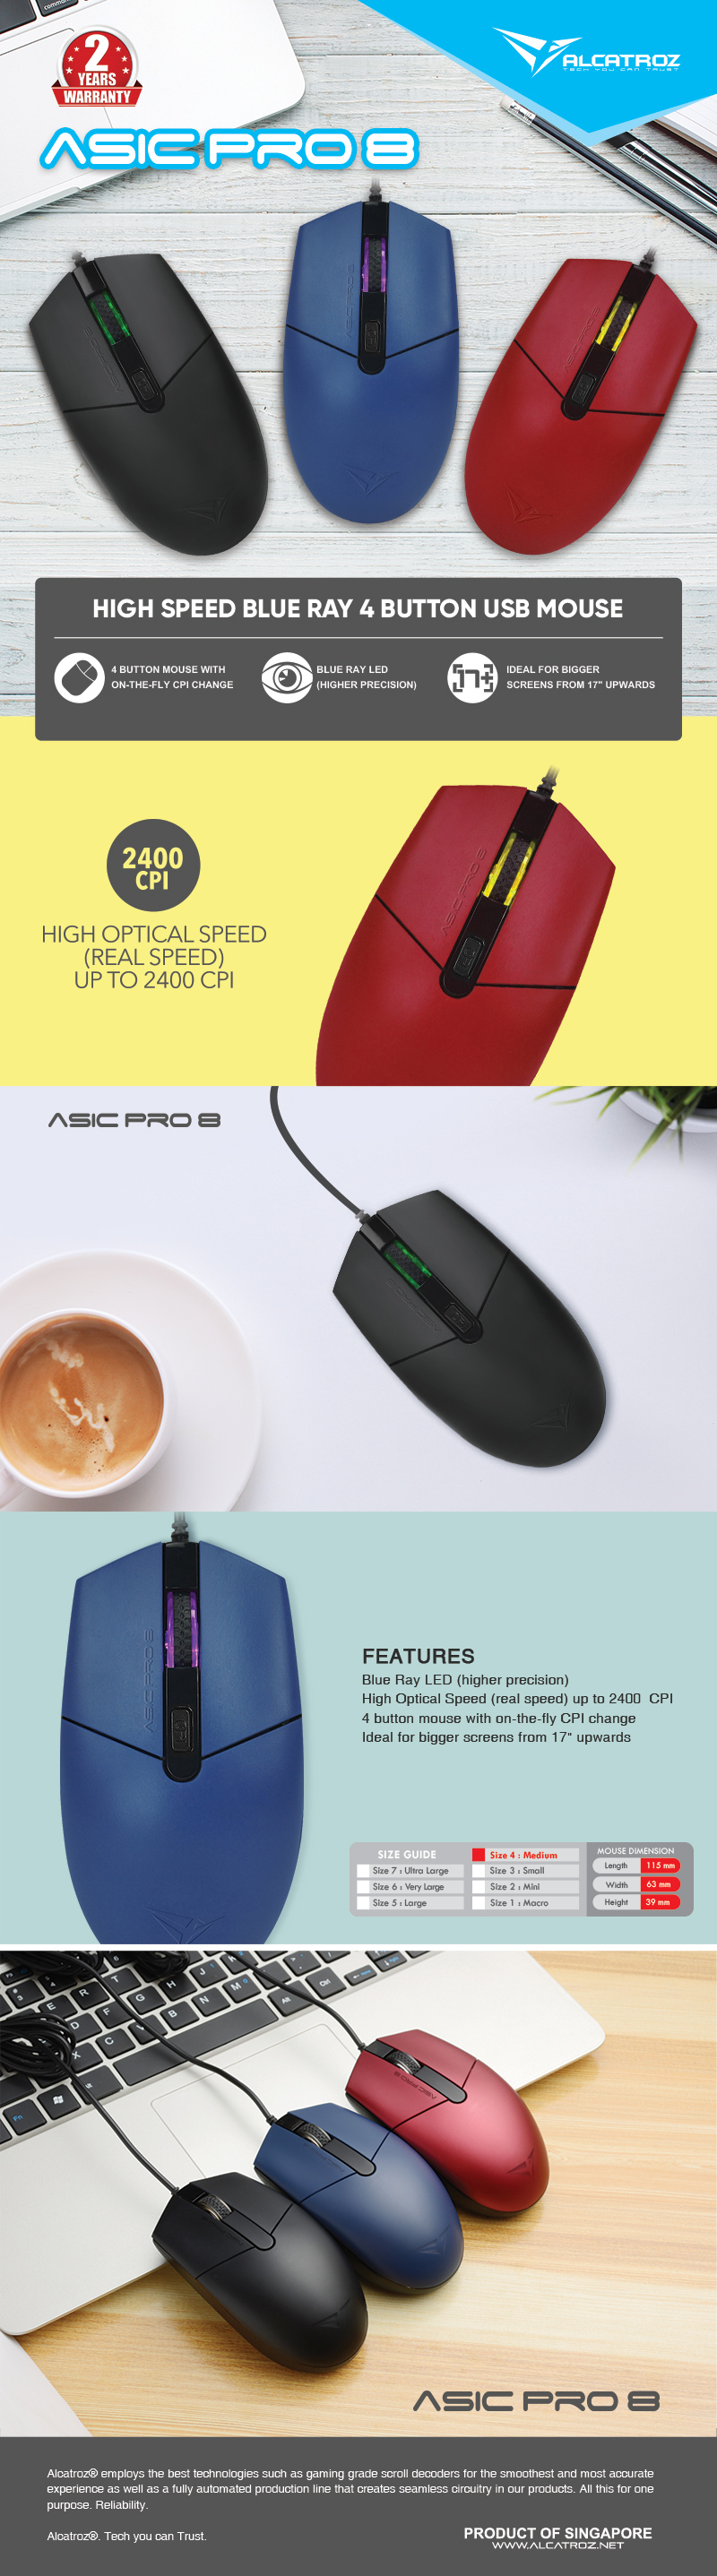 ALCATROZ WIRED HIGH SPEED BLUE RAY 4 BUTTON MOUSE ASIC PRO 8 RED eDM Asic Pro 8 1